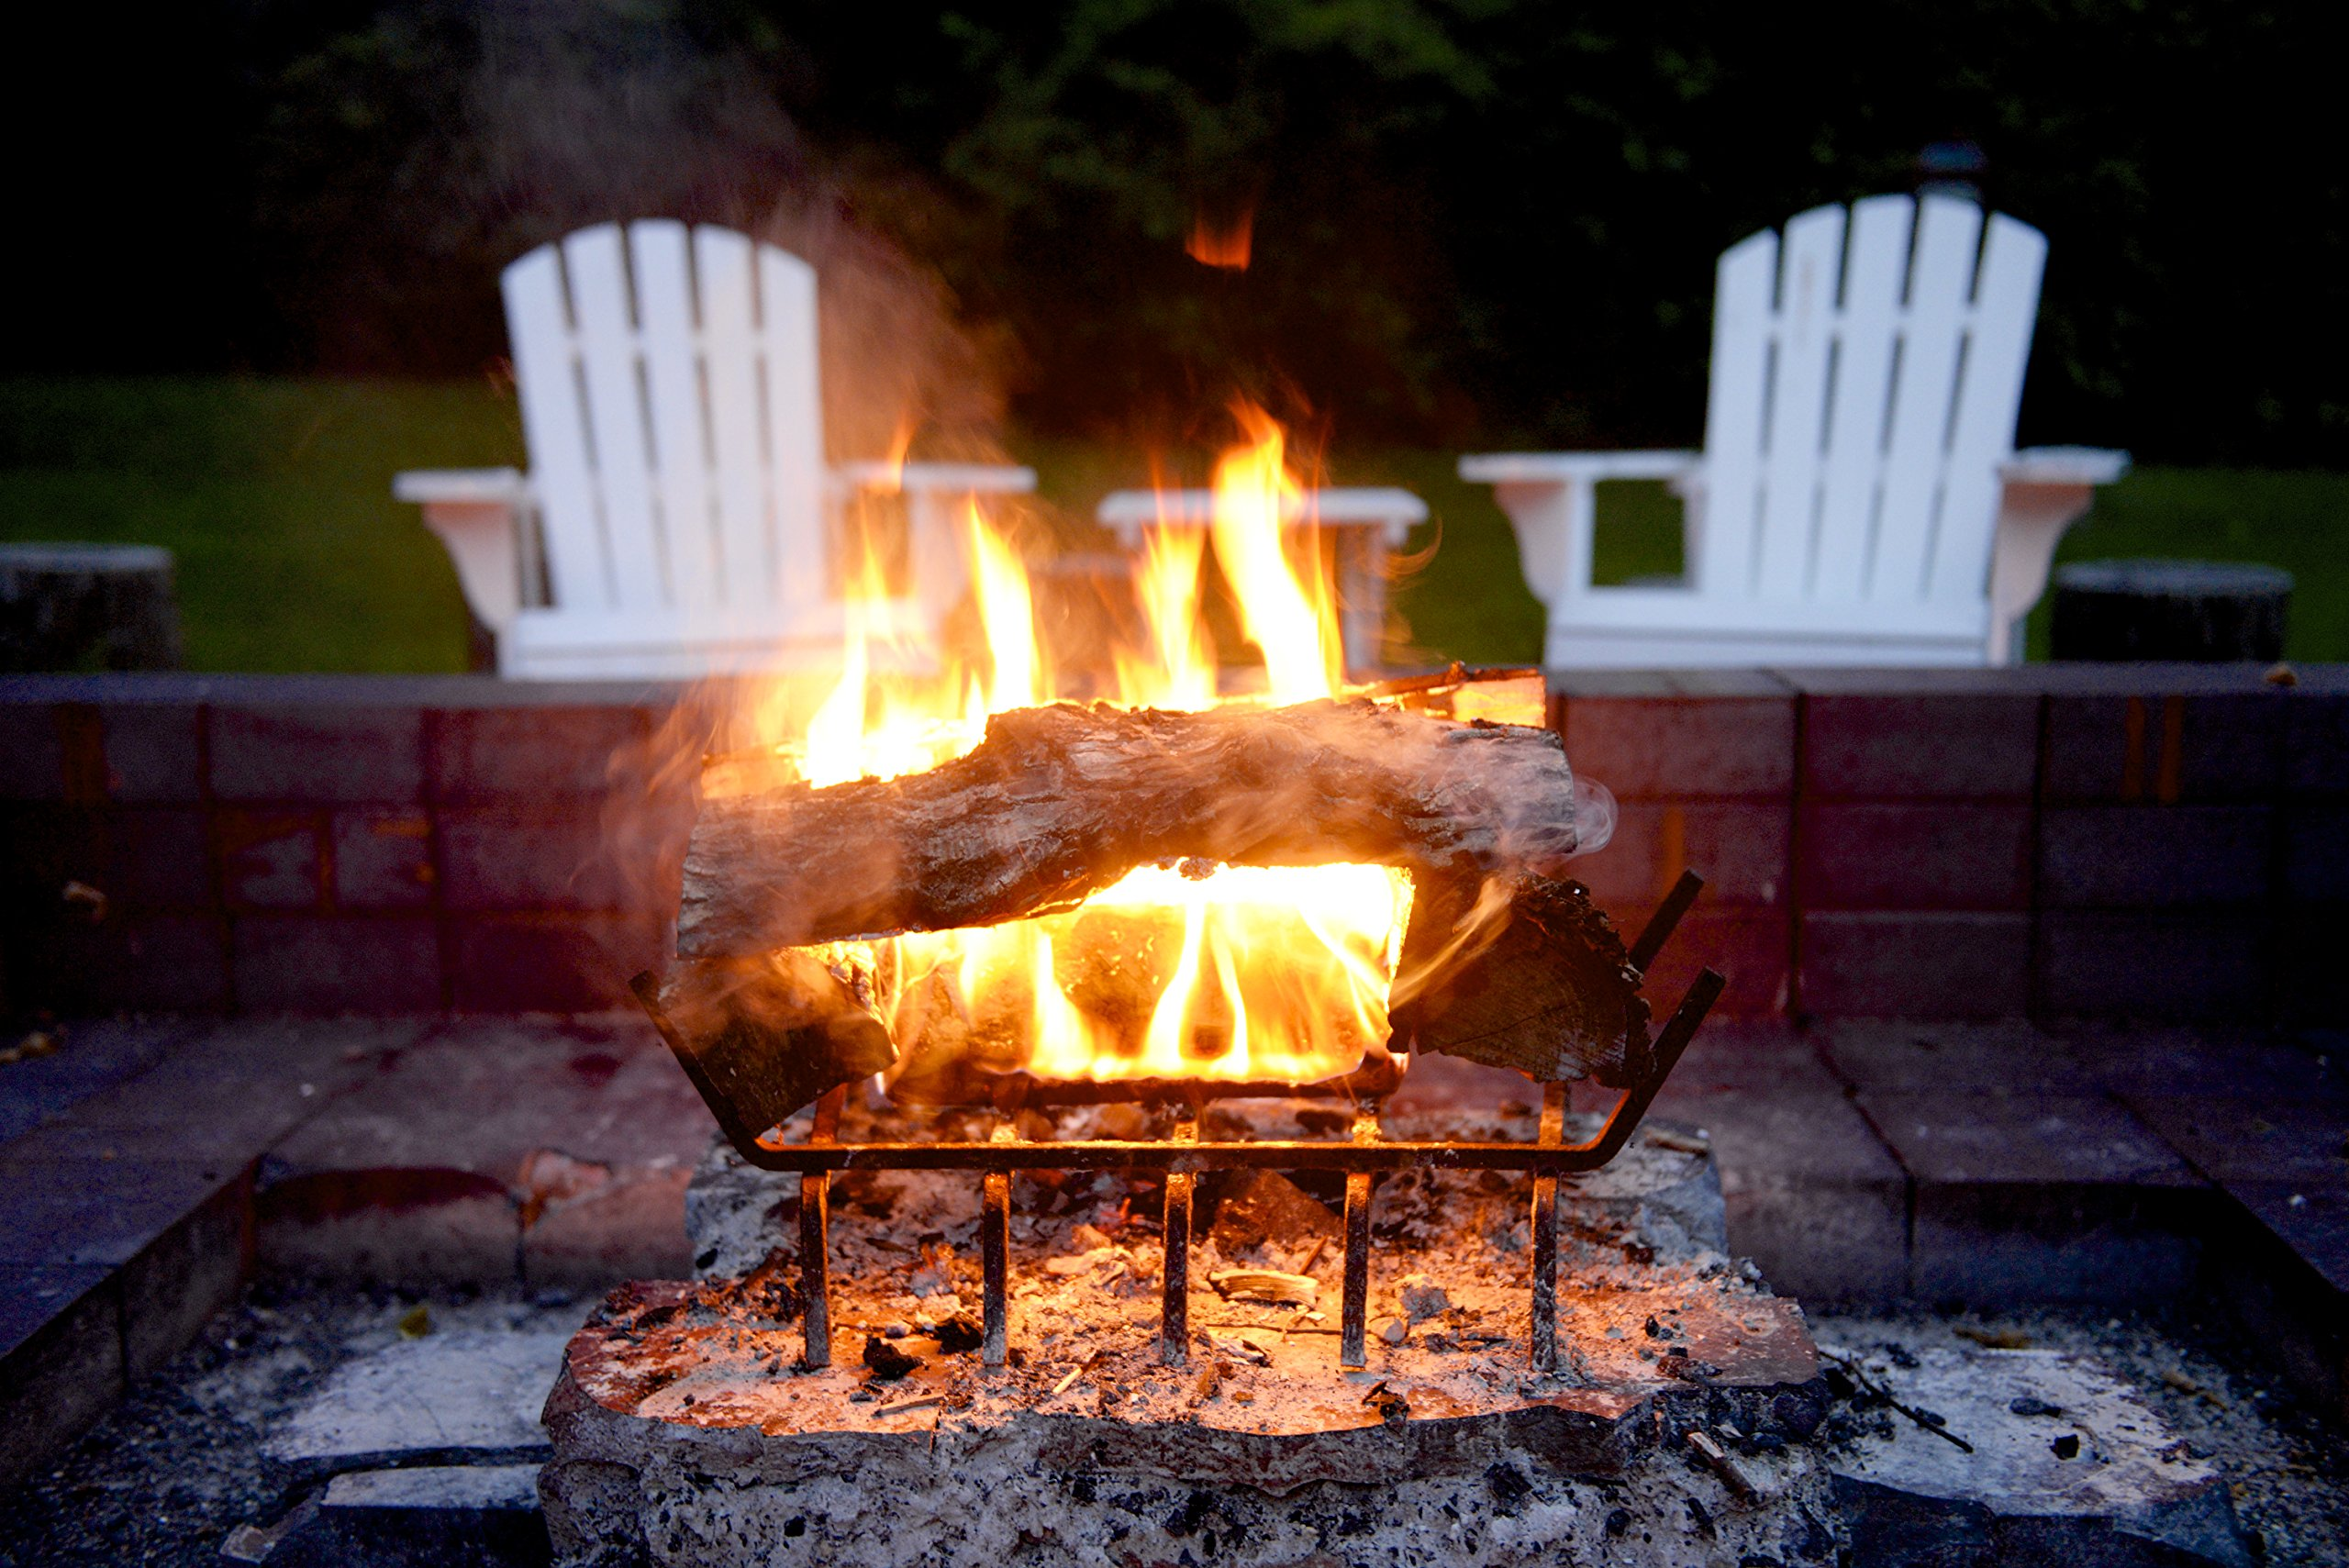 Pine Mountain Ultraflame 3-Hour Firelogs, 6 Logs (4152501351) Long Burning Firelog for Campfire, Fireplace, Fire Pit, Indoor & Outdoor Use by Pine Mountain